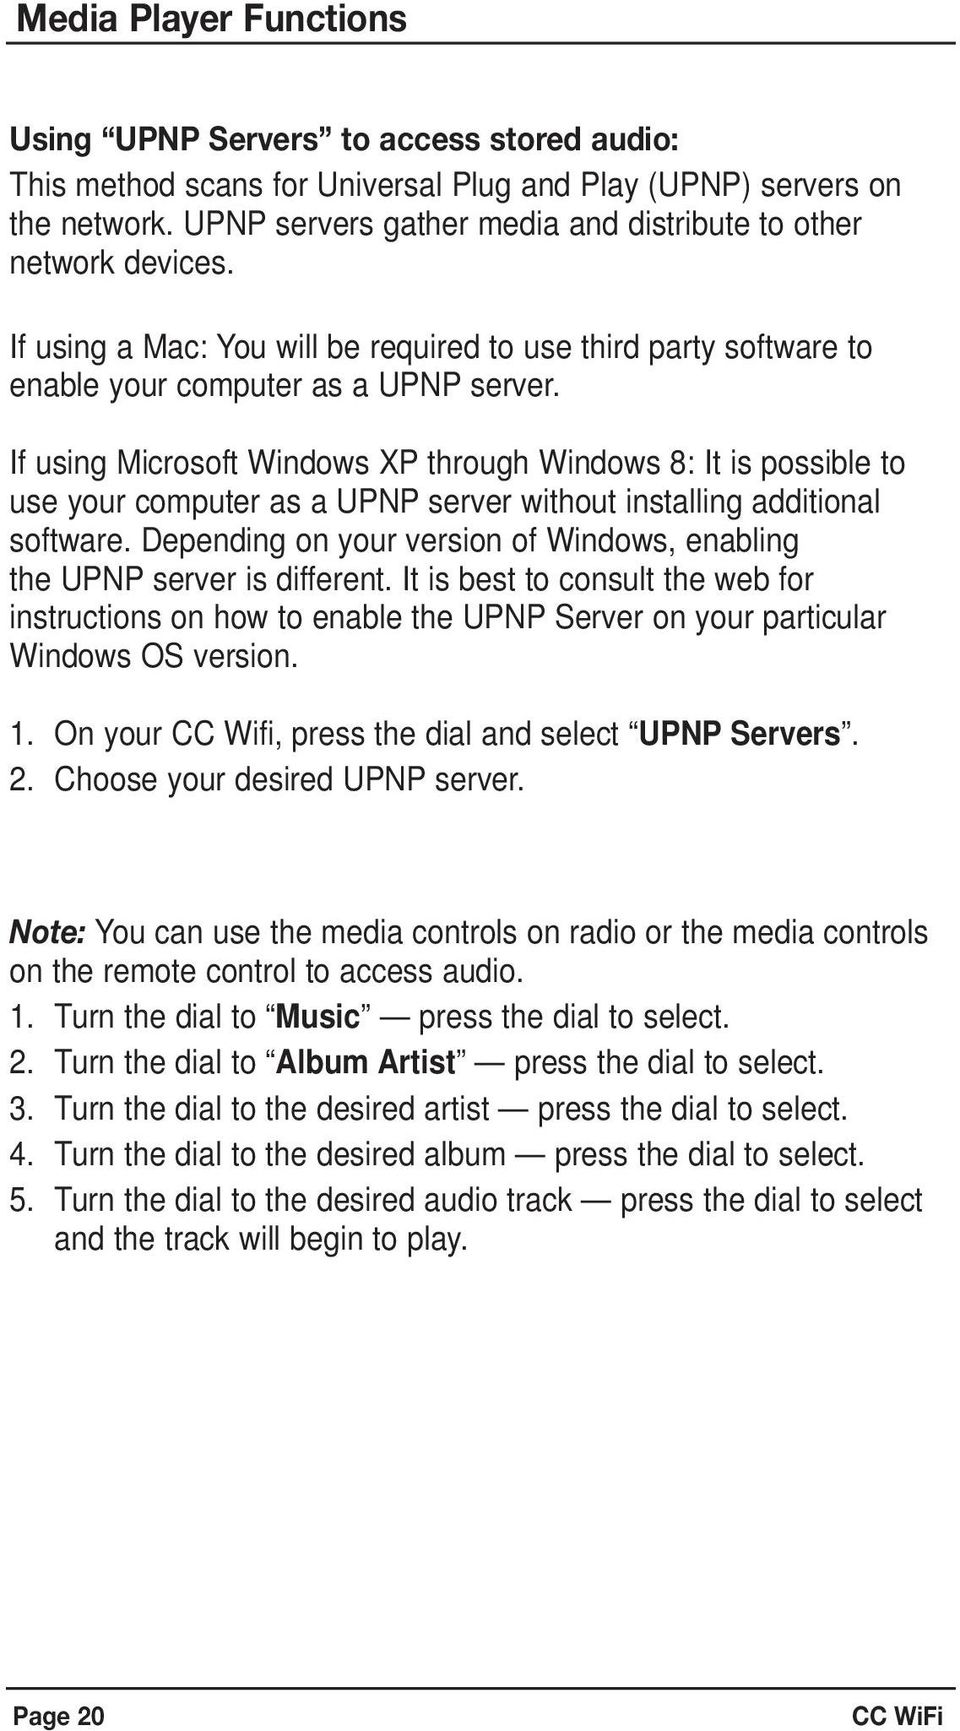 If using Microsoft Windows XP through Windows 8: It is possible to use your computer as a UPNP server without installing additional software.